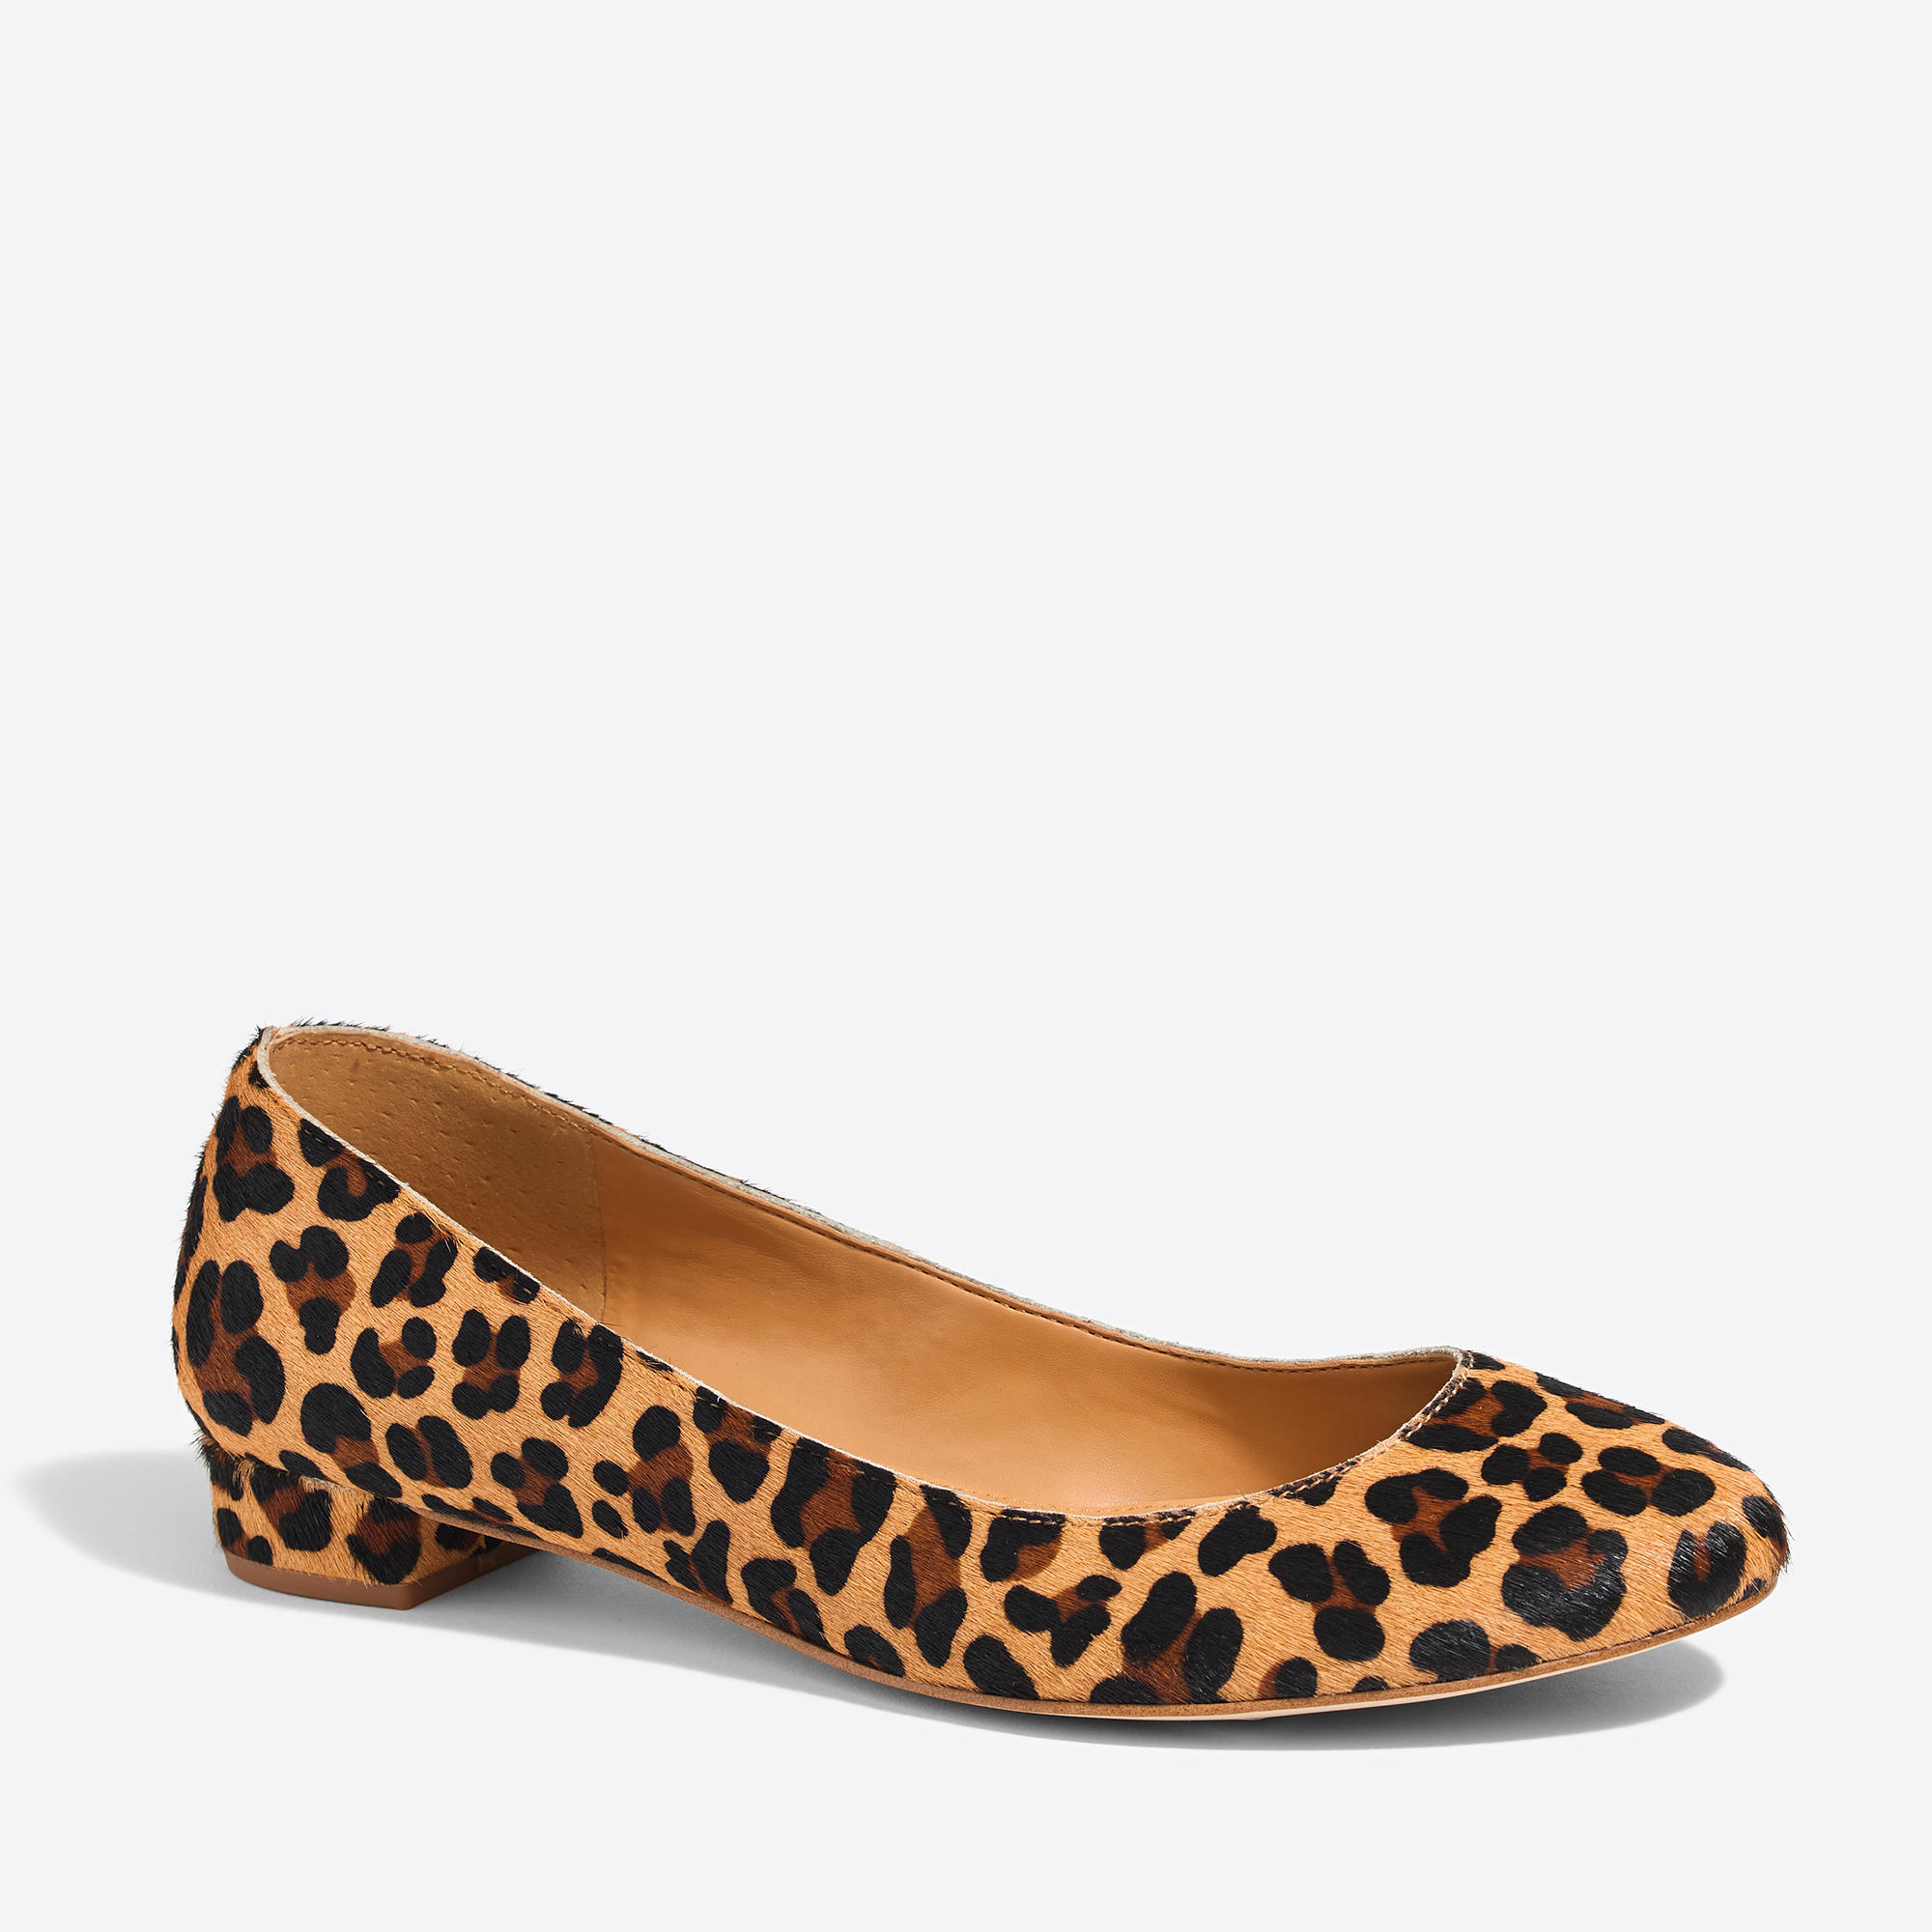 Lily Calf Hair Covered Heel Flats Factorywomen Occasion